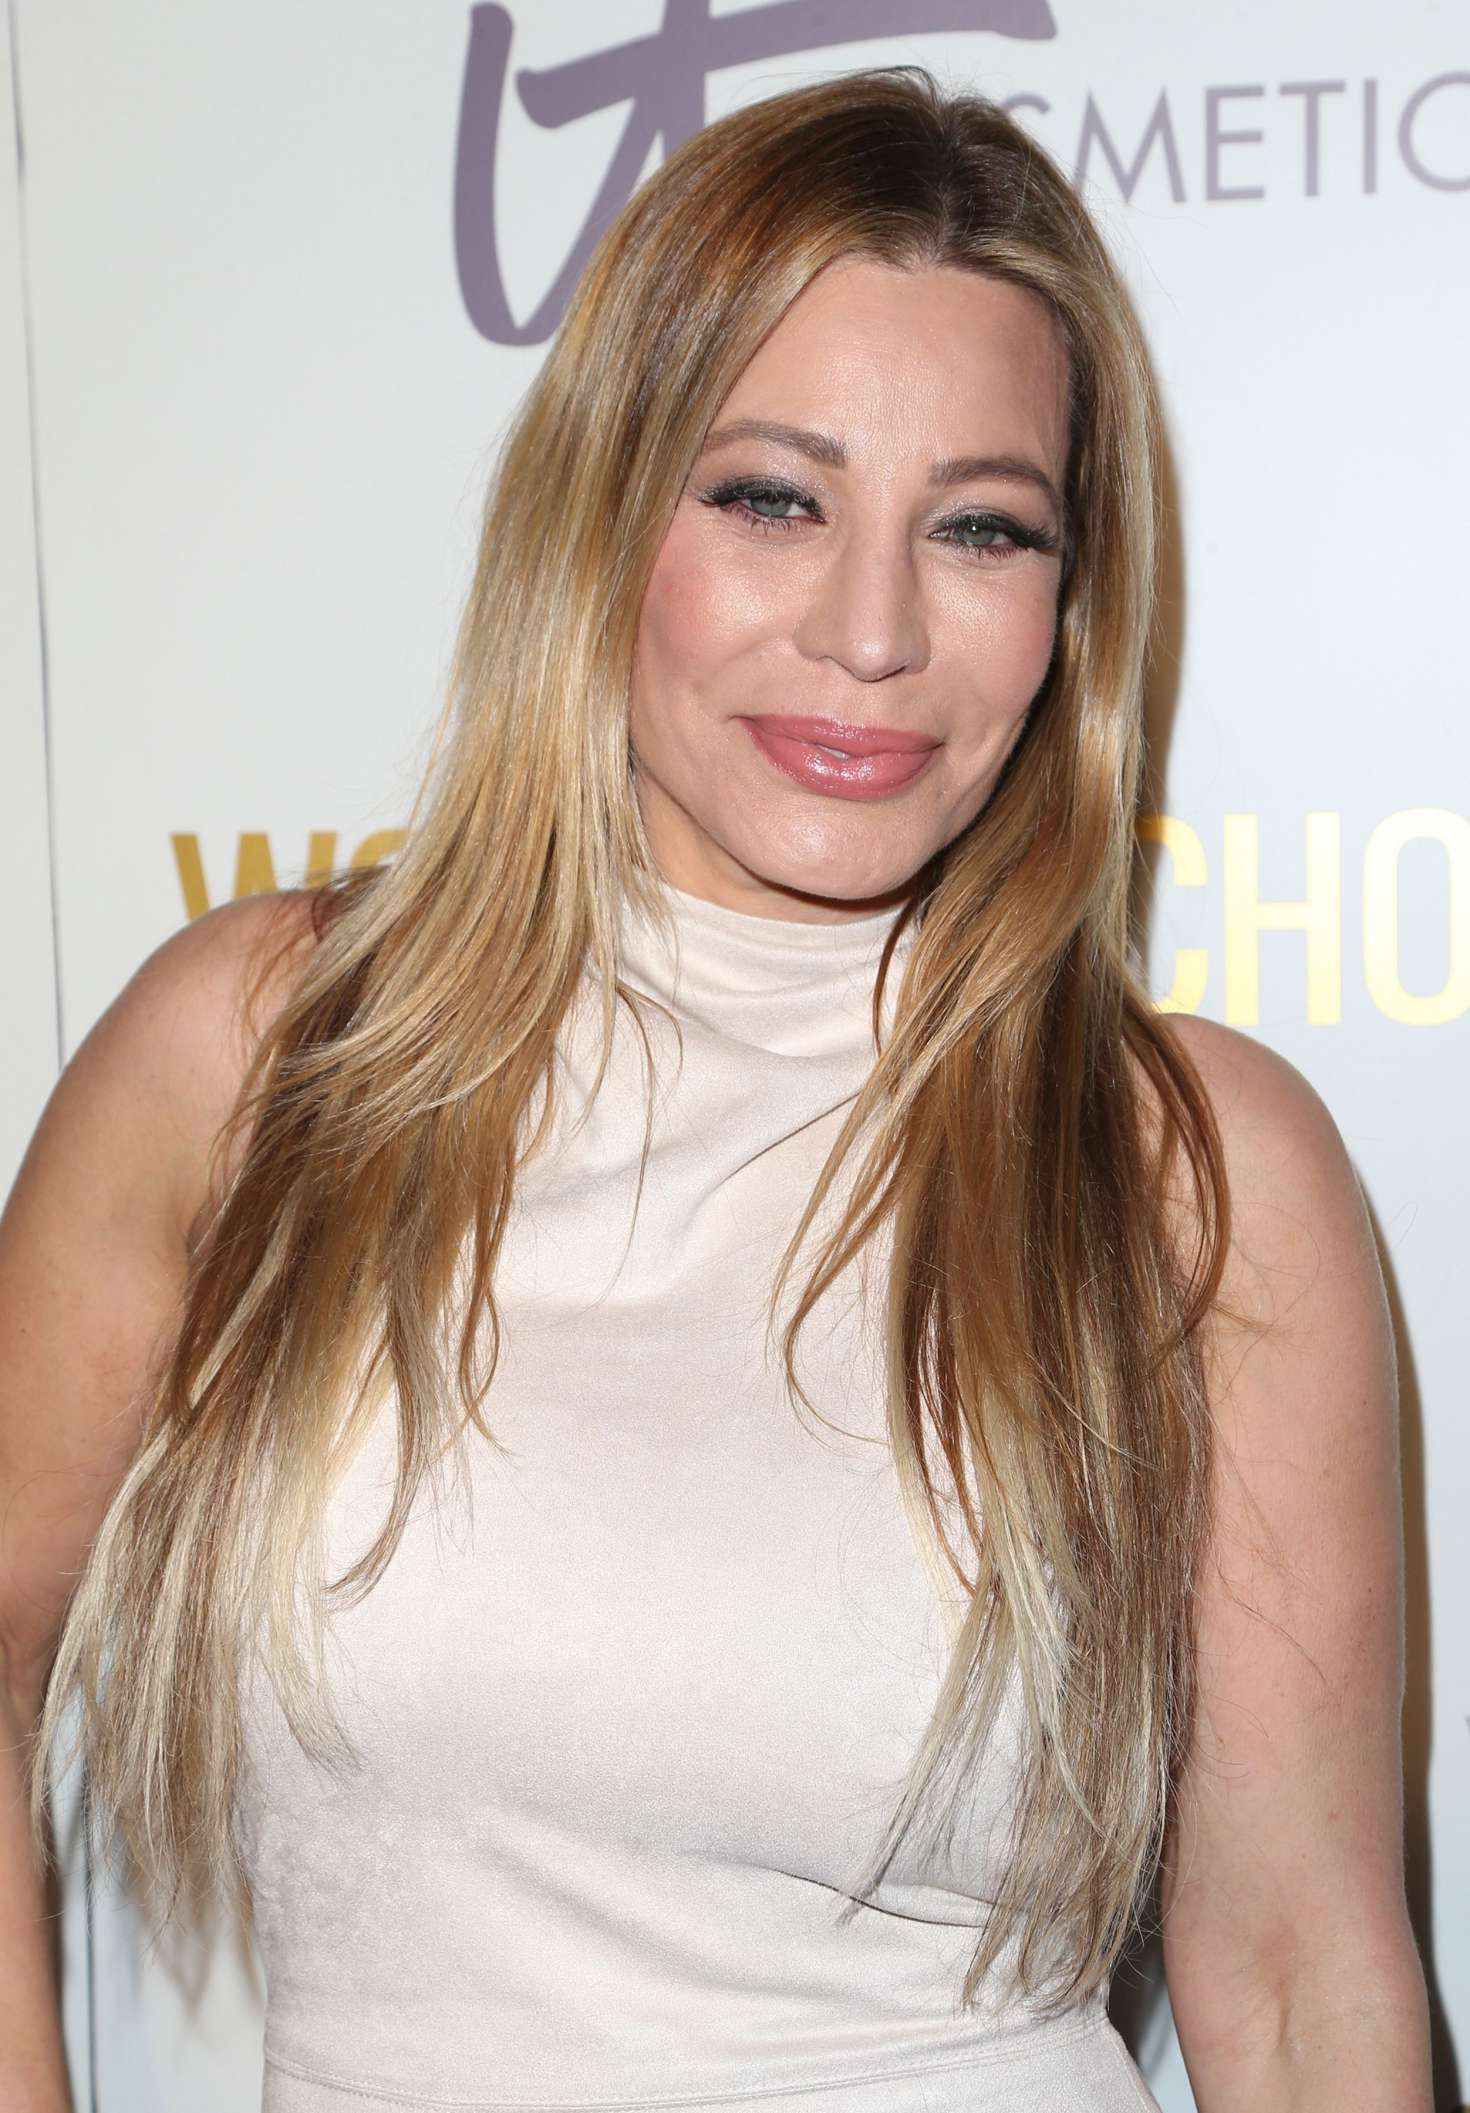 Pictures Taylor Dayne nudes (57 photo), Ass, Fappening, Boobs, cleavage 2017